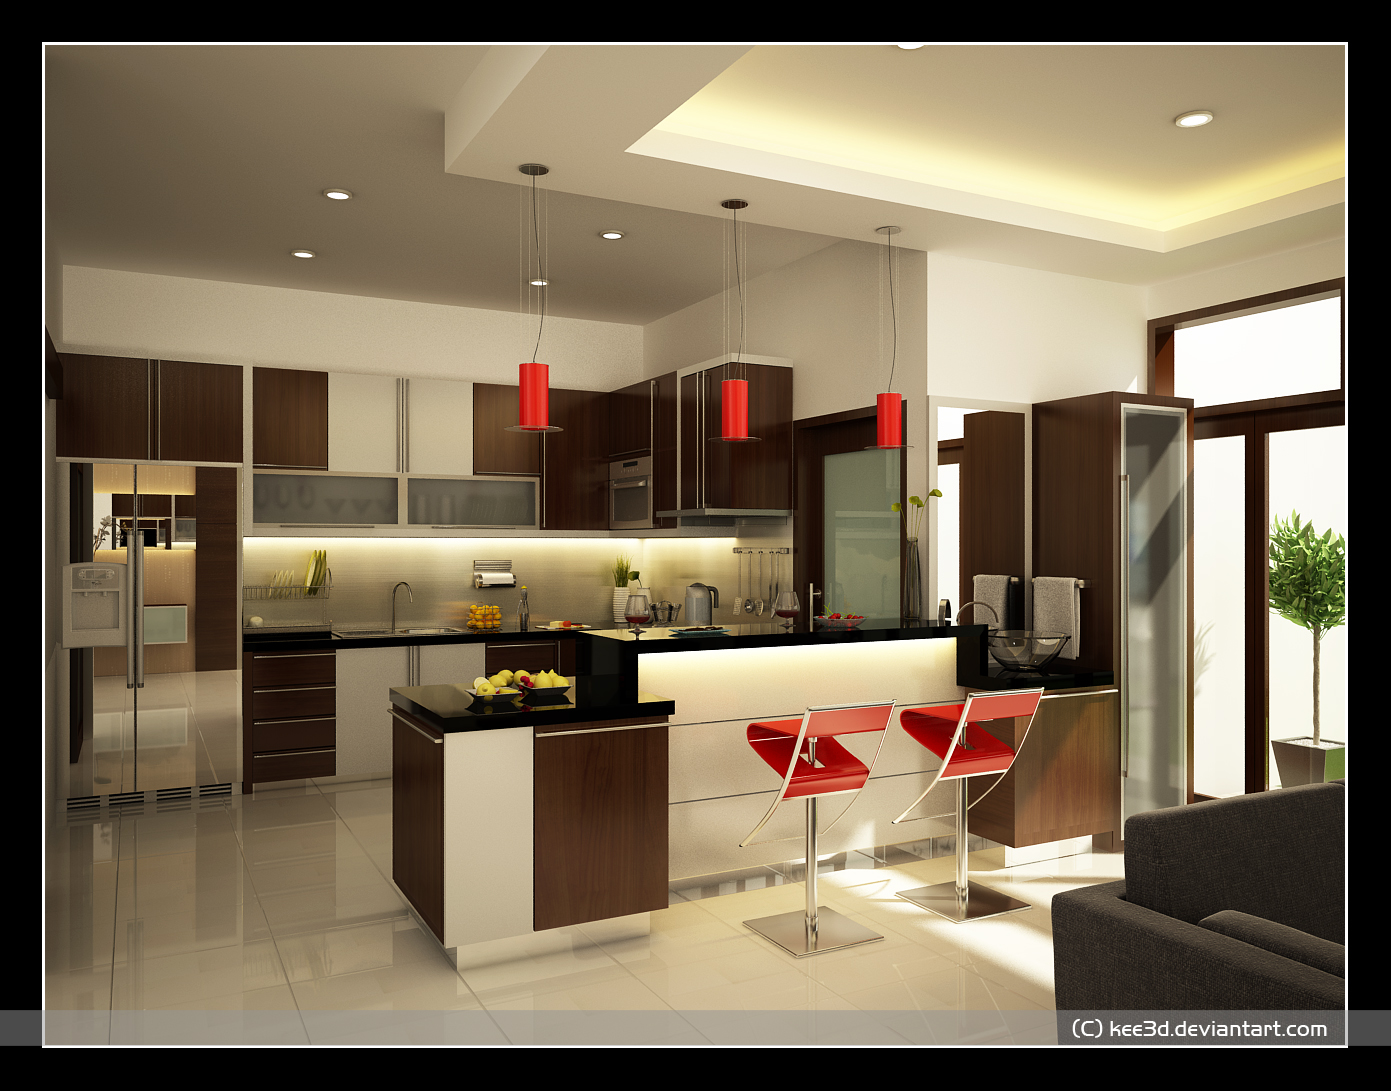 Home Kitchen Designs Ideas Part - 23: By Octo Brilian